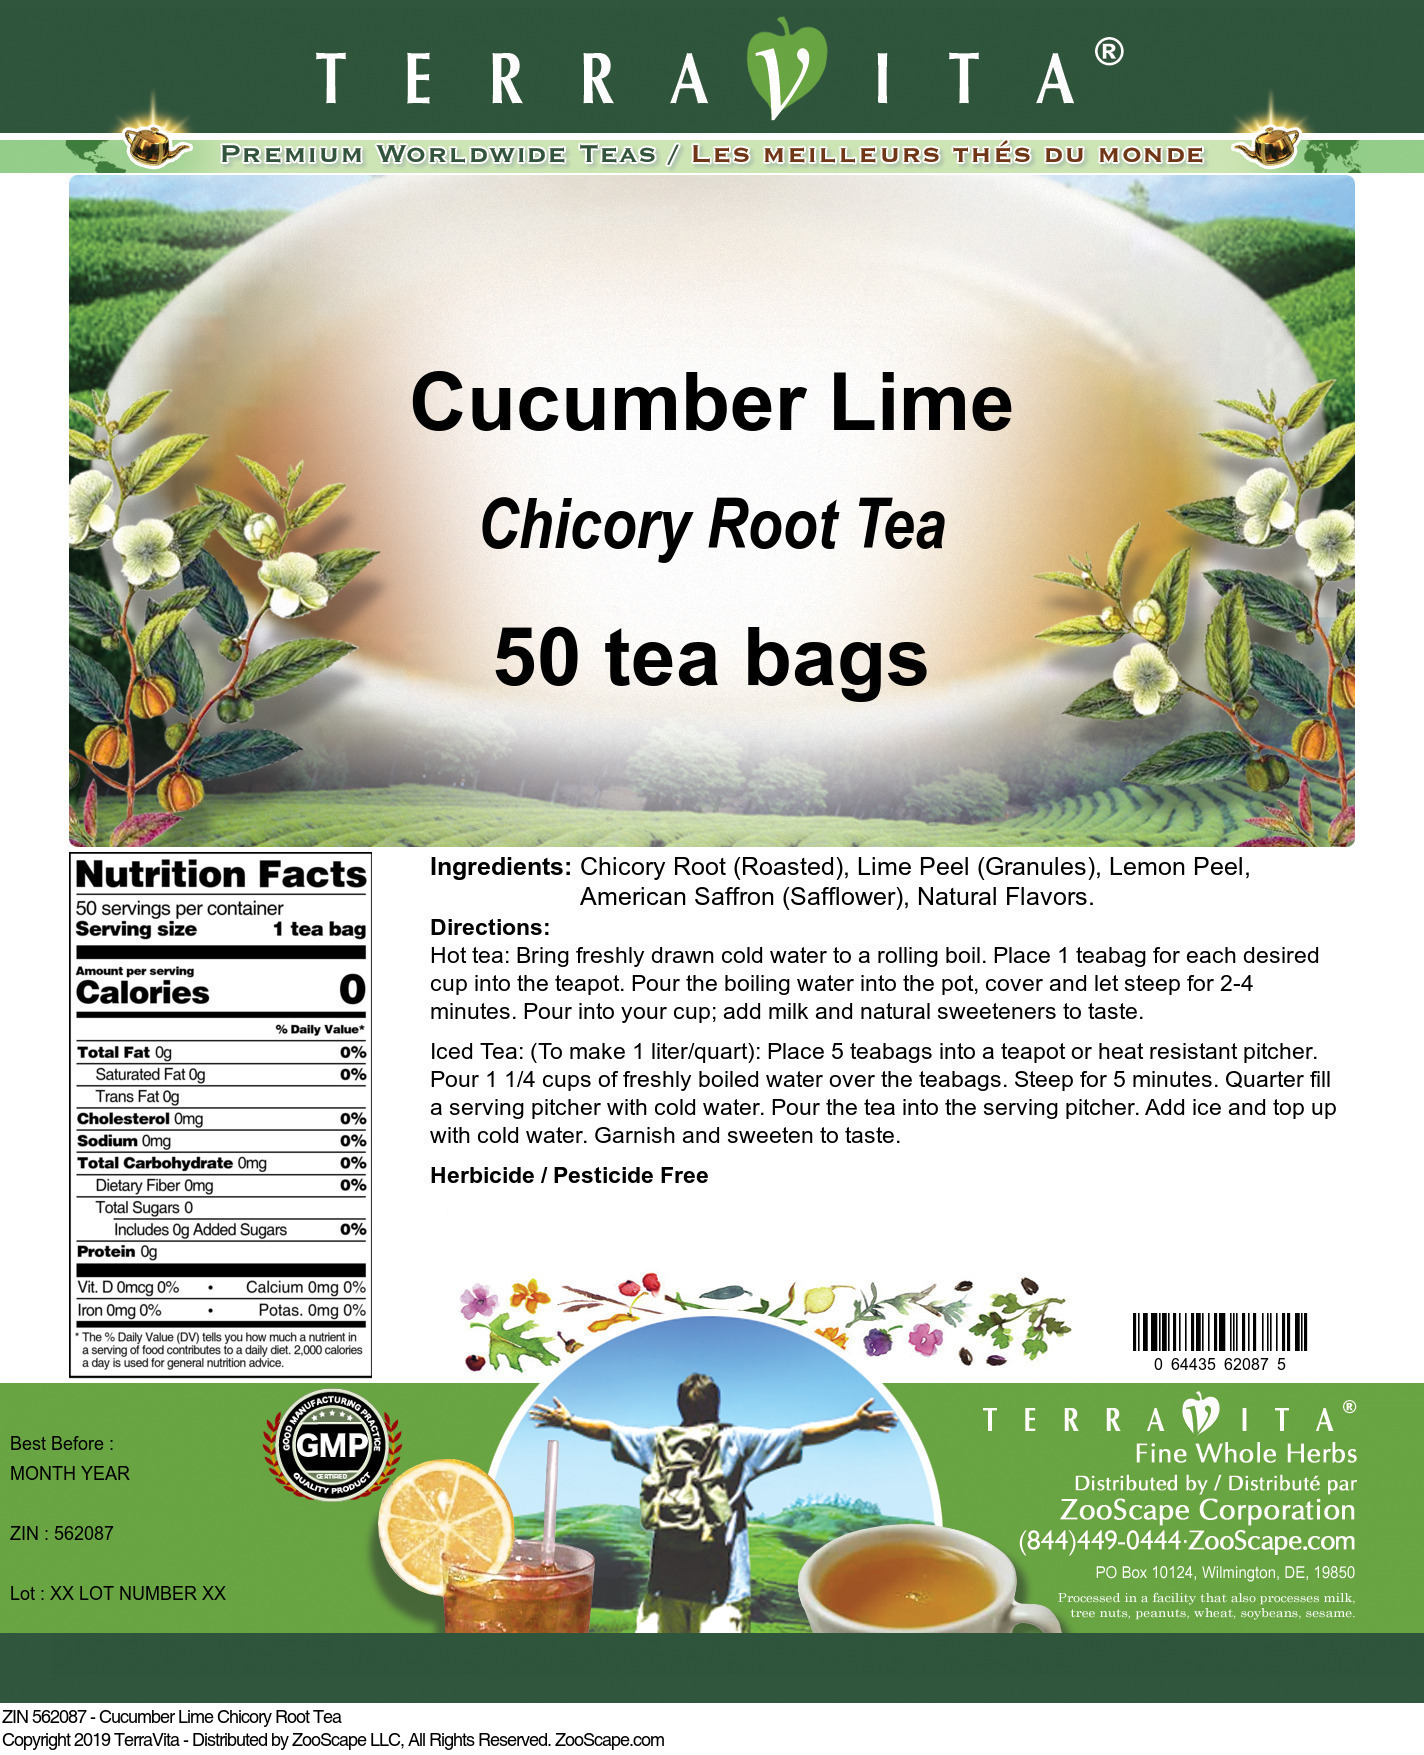 Cucumber Lime Chicory Root